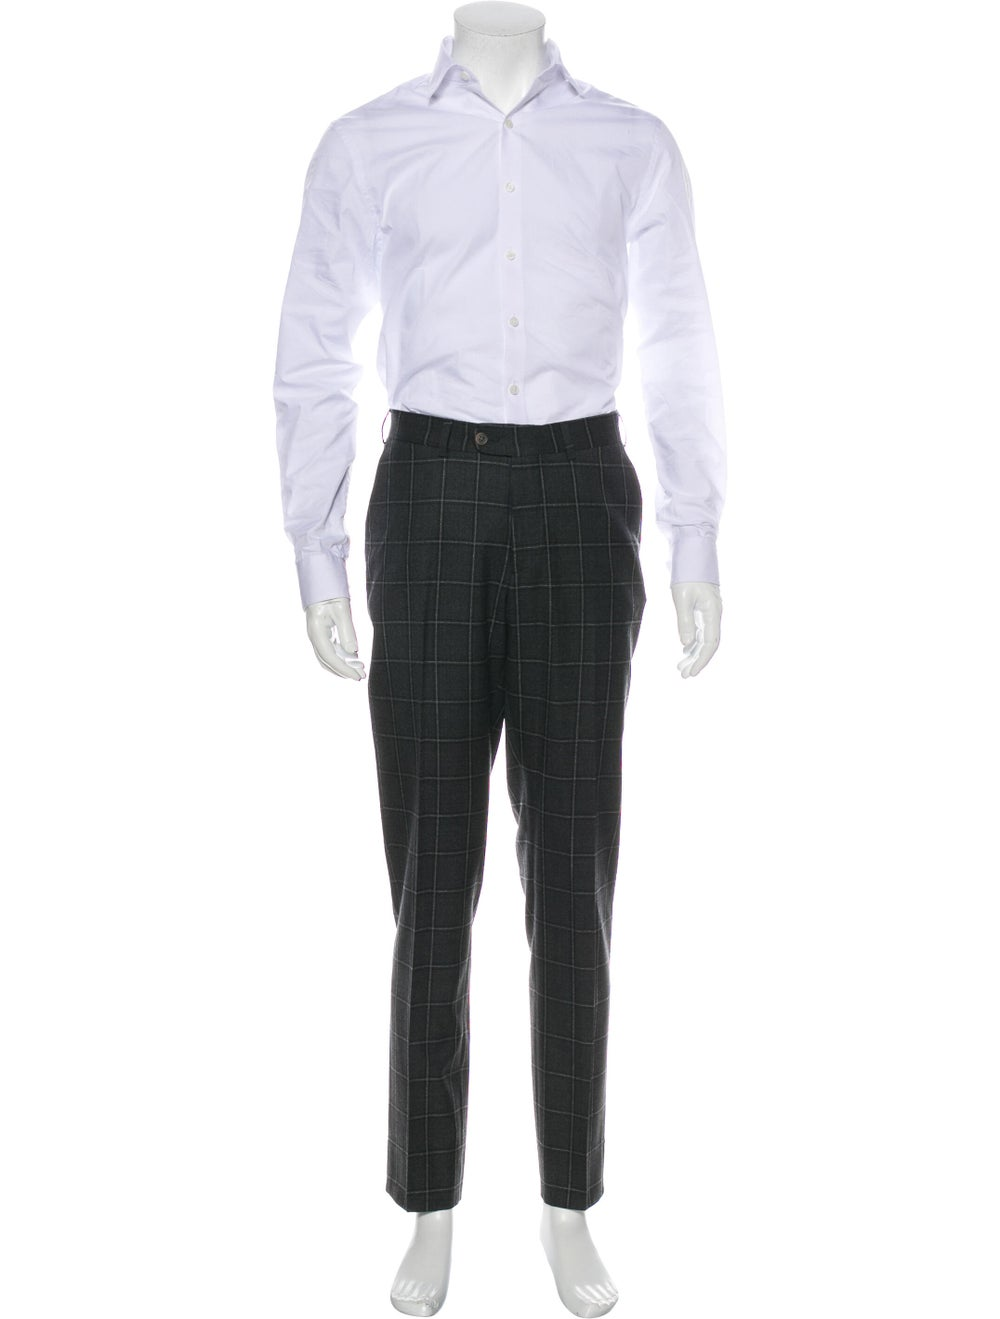 Suitsupply Plaid Two-Piece Suit grey - image 4